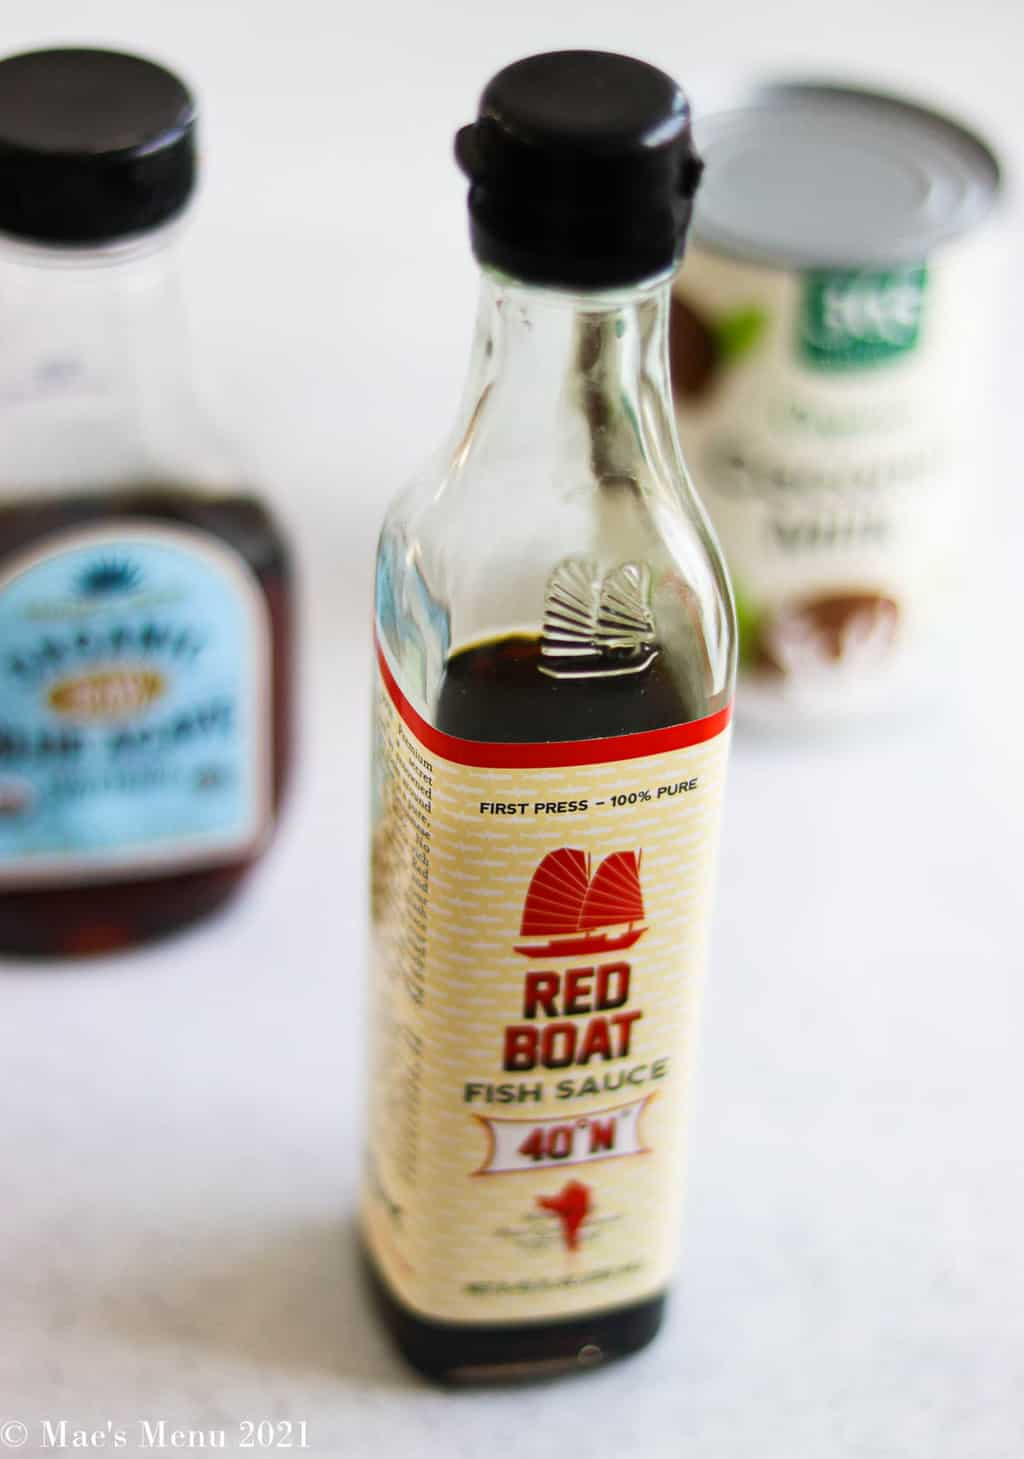 A bottle of red boat fish sauce sitting in front of agave syrup and coconut milk